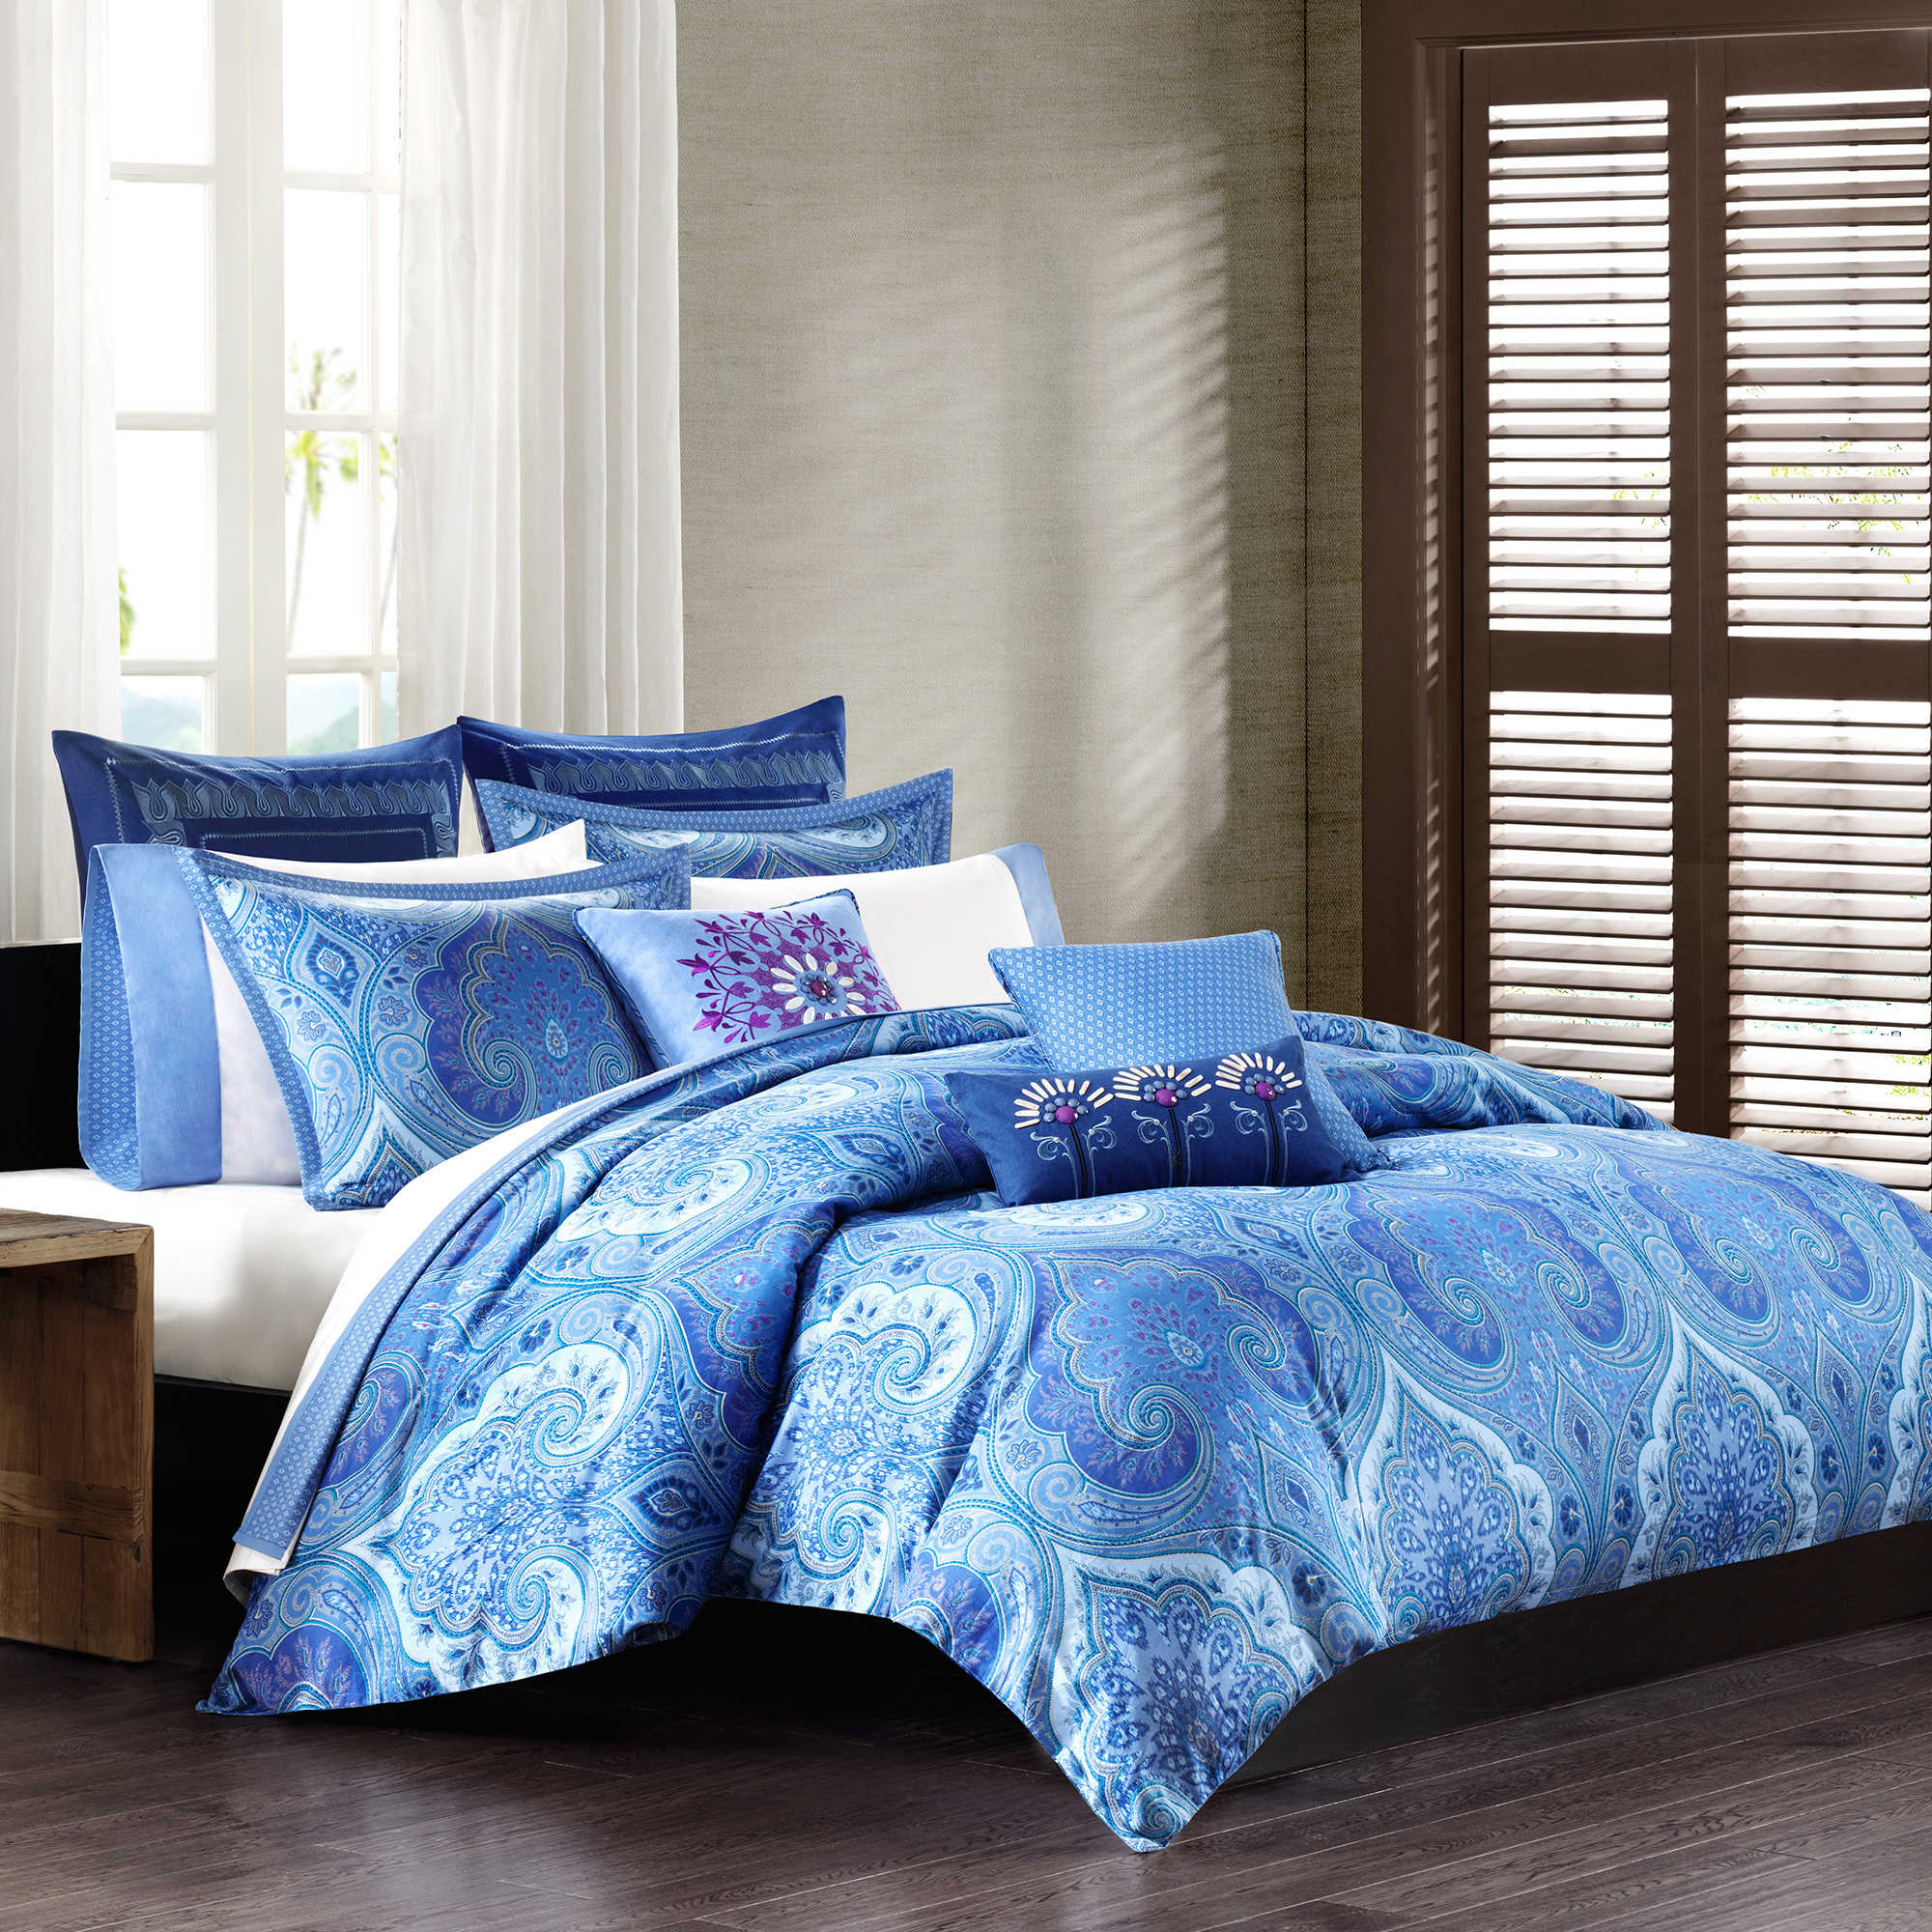 Luxurious Oversized Duvet Cover In Blue With Beautiful Patterns White Bedding A Lot Of Pillows